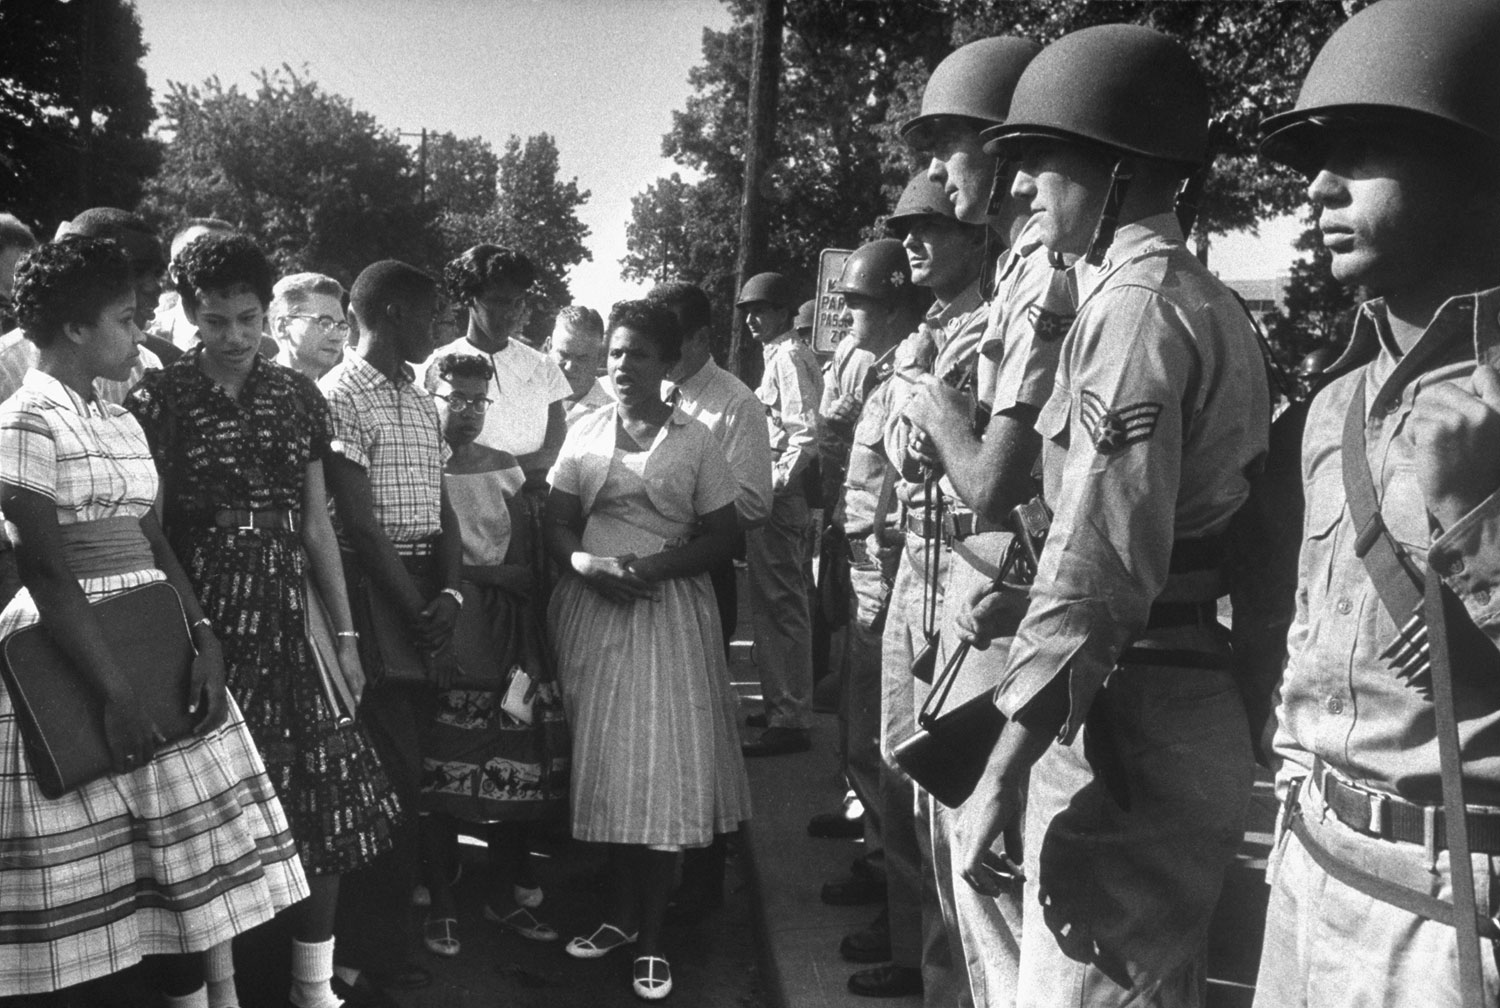 Arkansas National Guardsmen prevent African American students from entering Little Rock Central High School, September 1957.